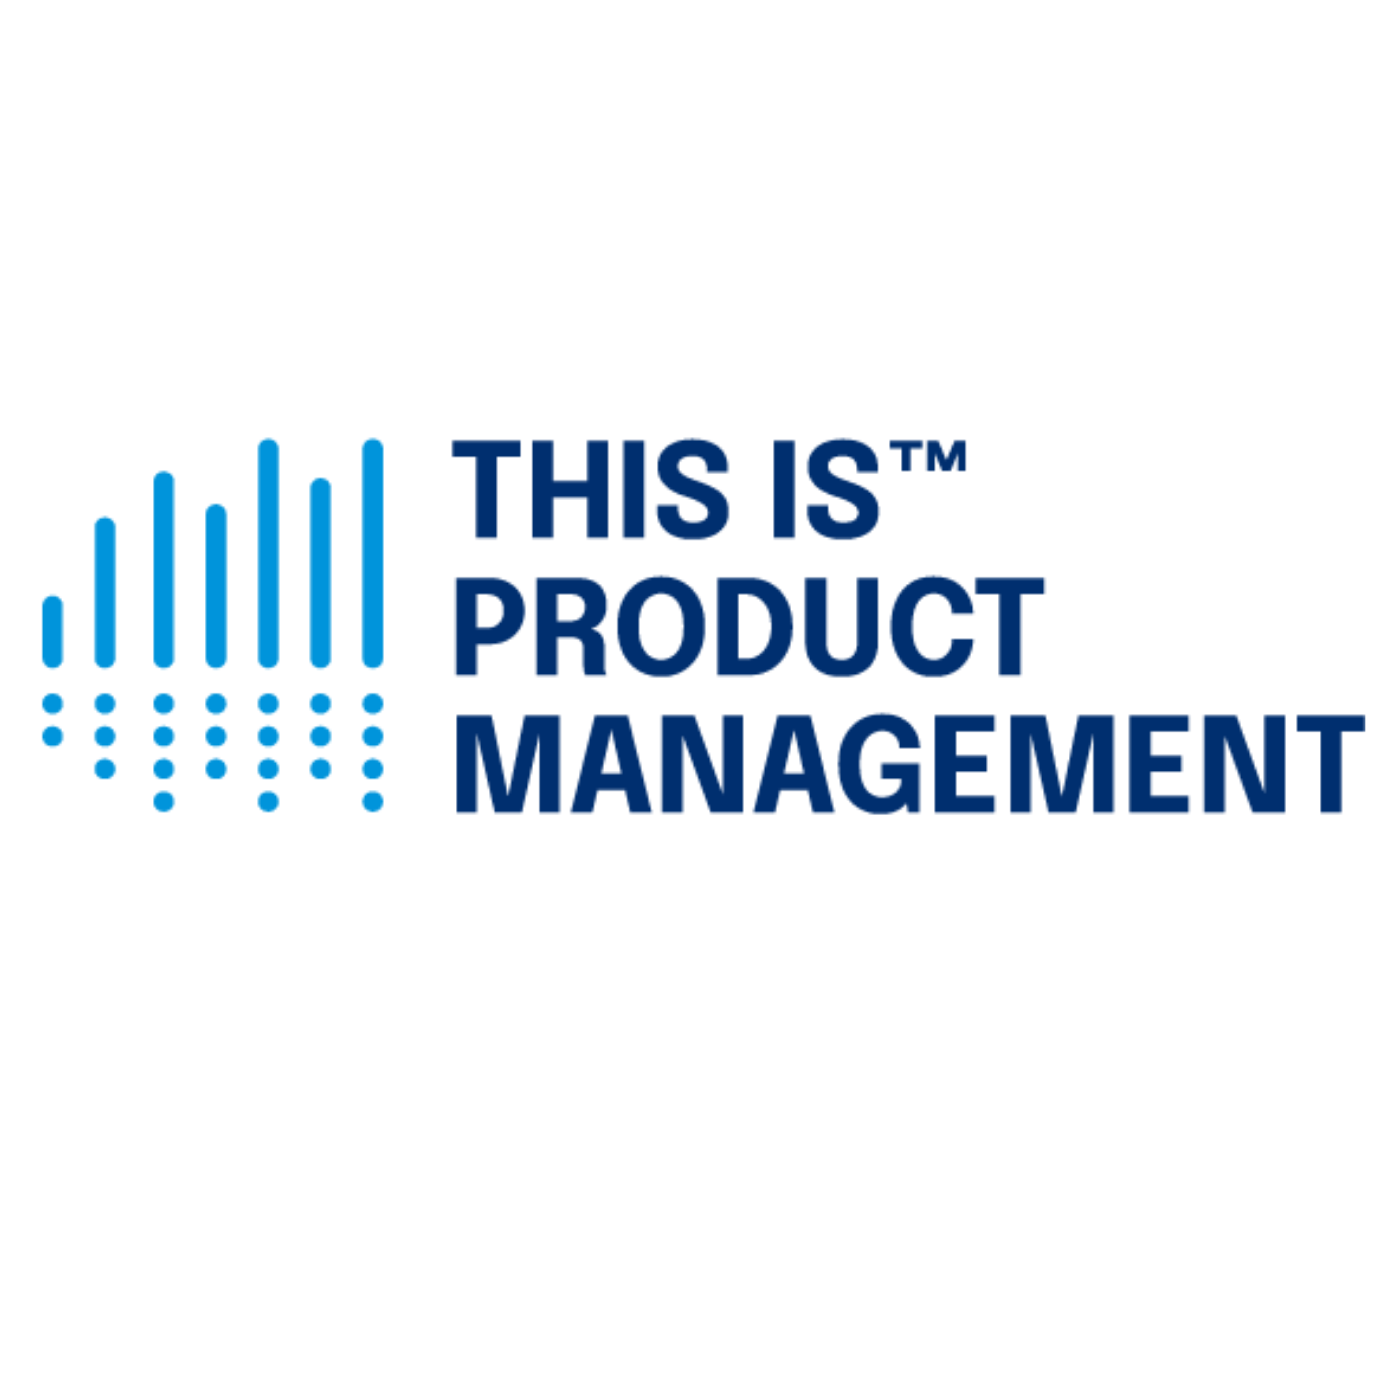 Connecting with the Next Generation of Consumers is Product Management